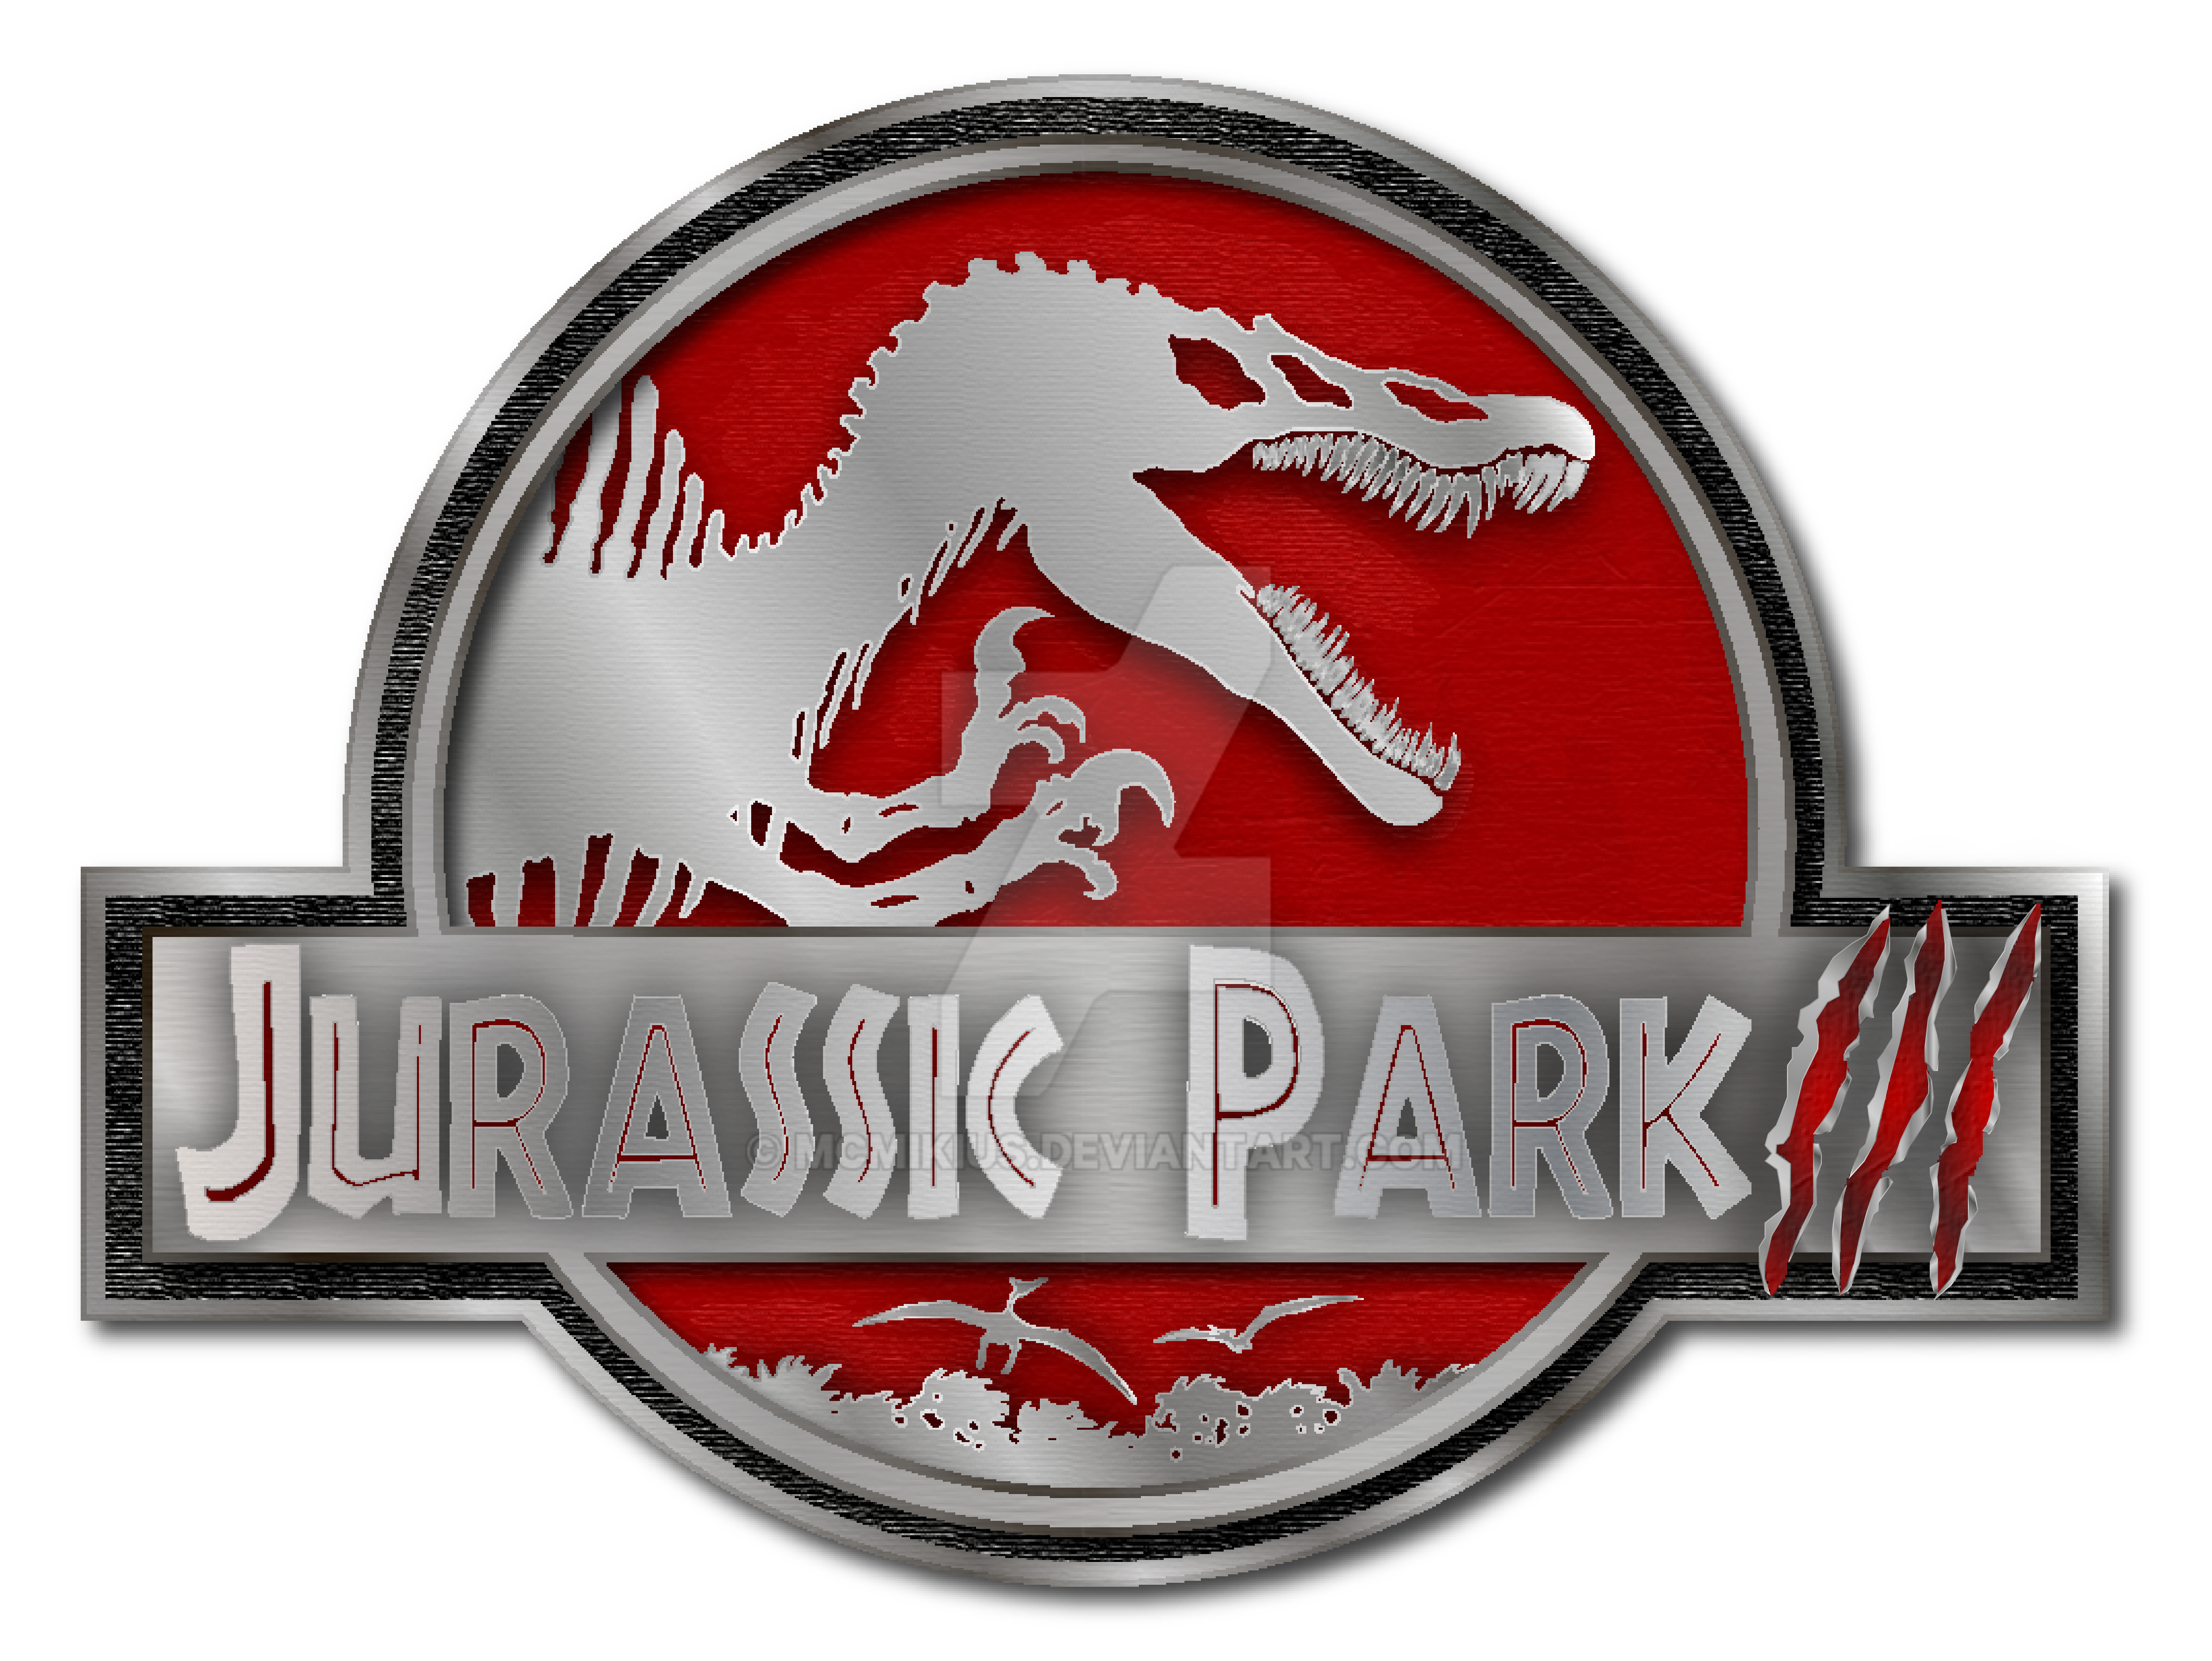 jurassic park 3 logo by mcmikius on DeviantArt